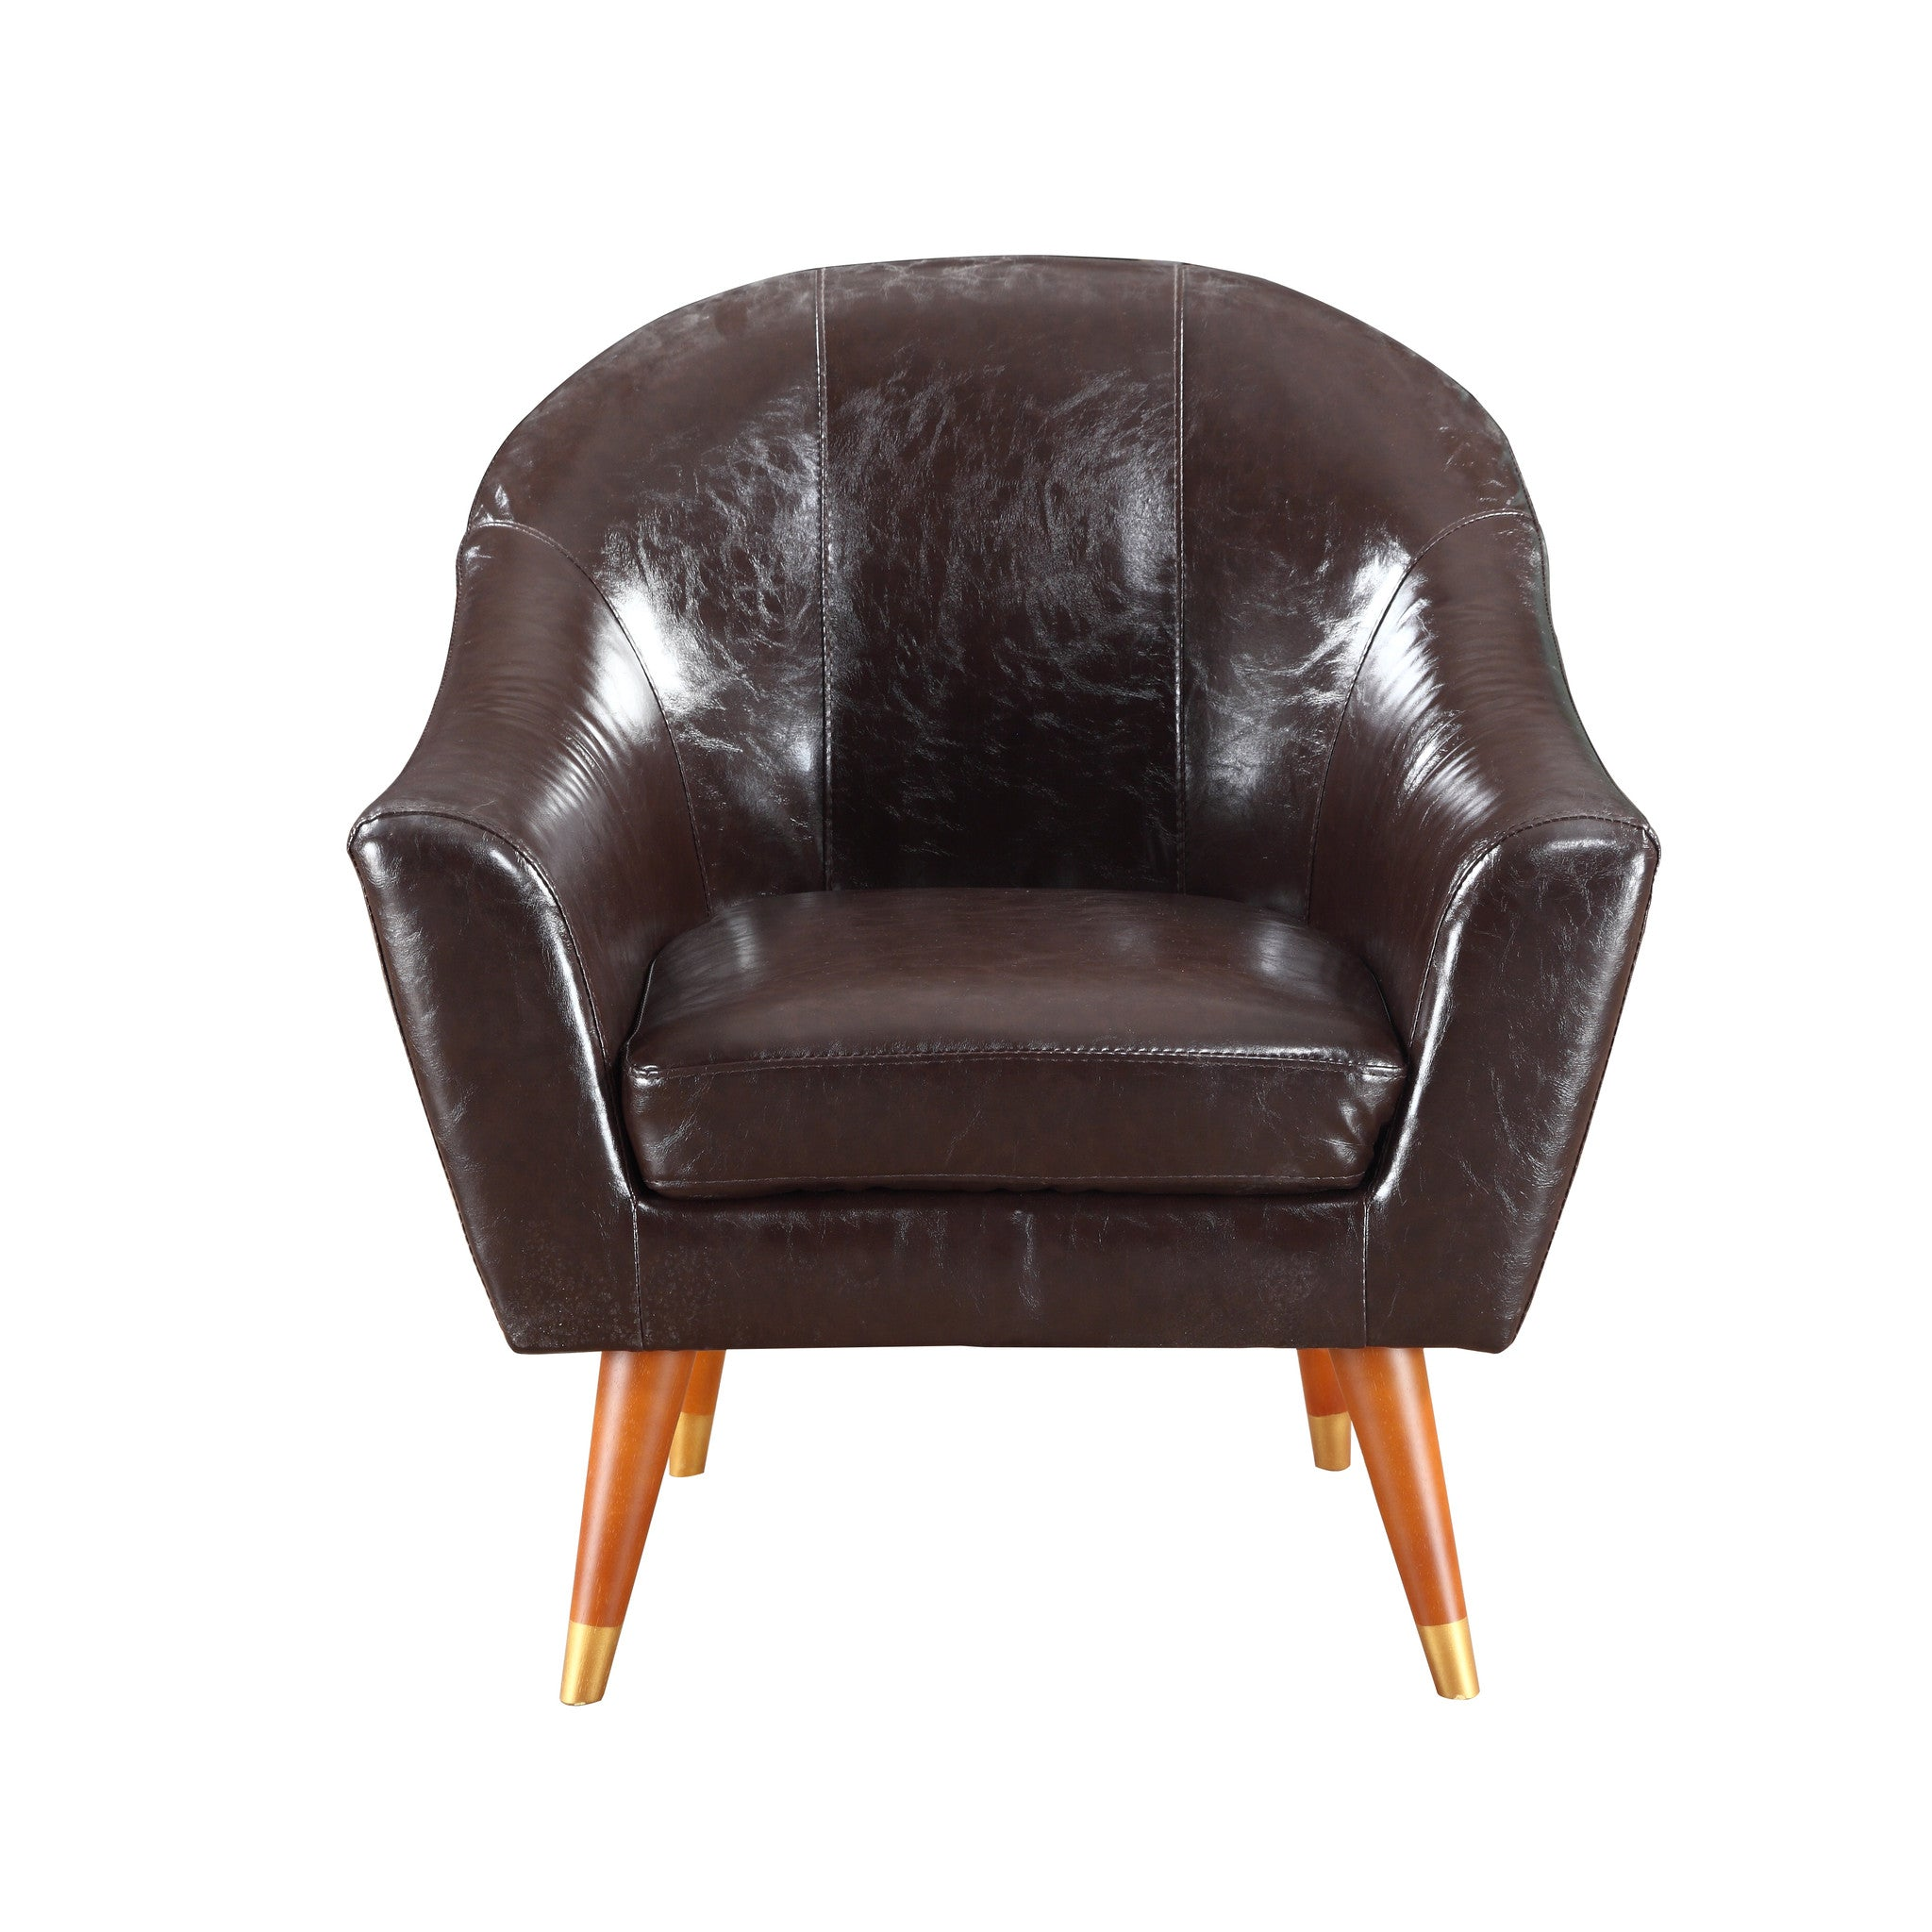 Leather Chair Wooden Legs Image